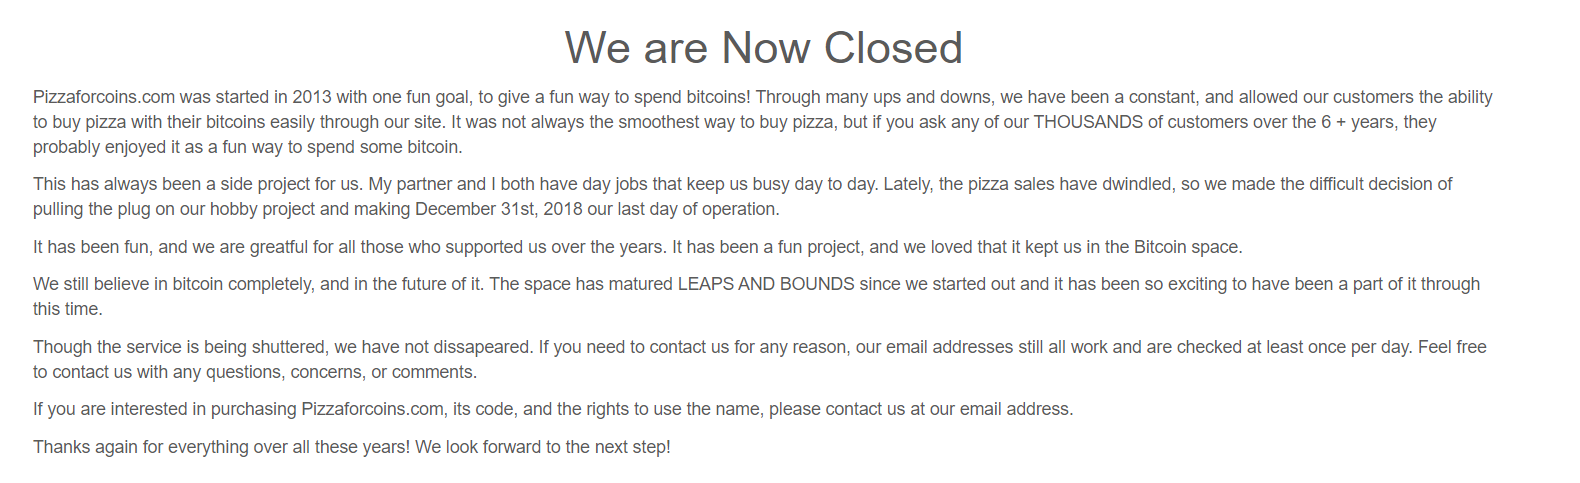 Pizzaforcoins Closing